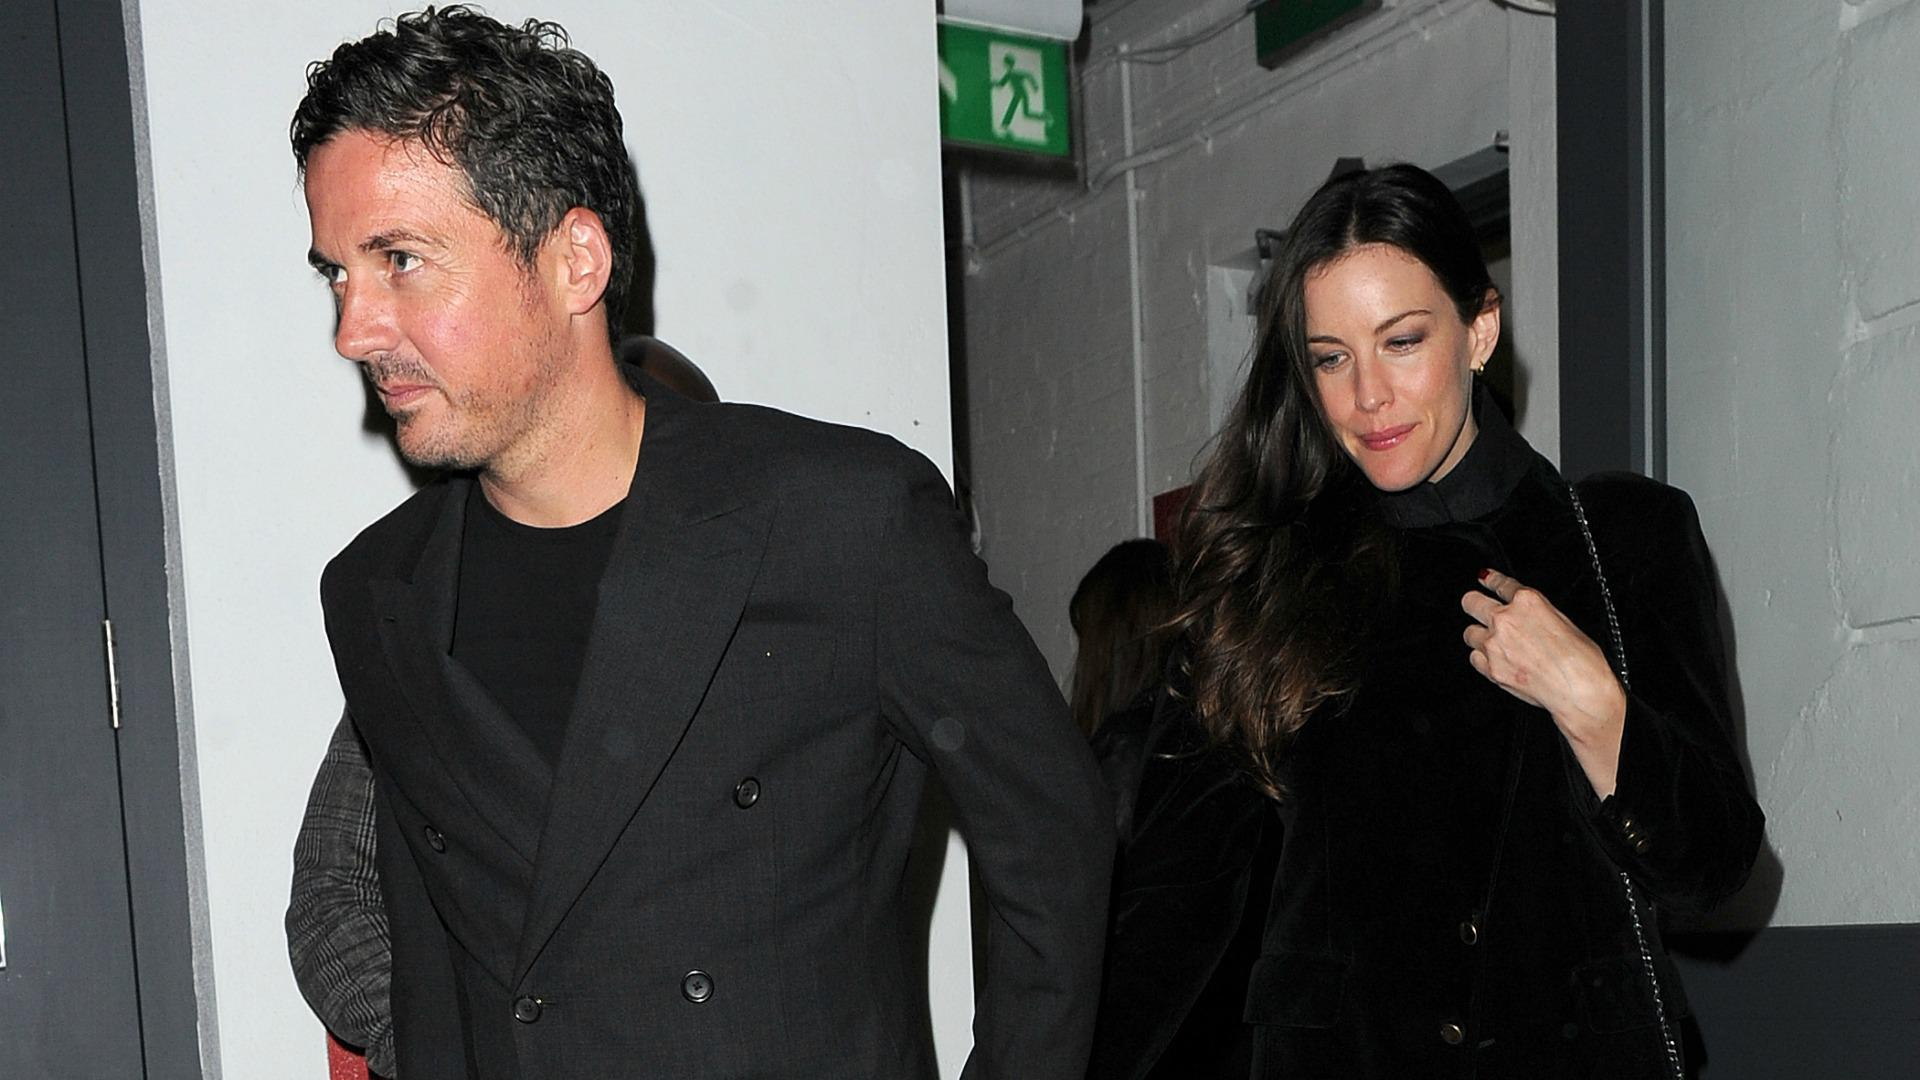 Liv Tyler's dating David Beckham's BFF Dave Gardner